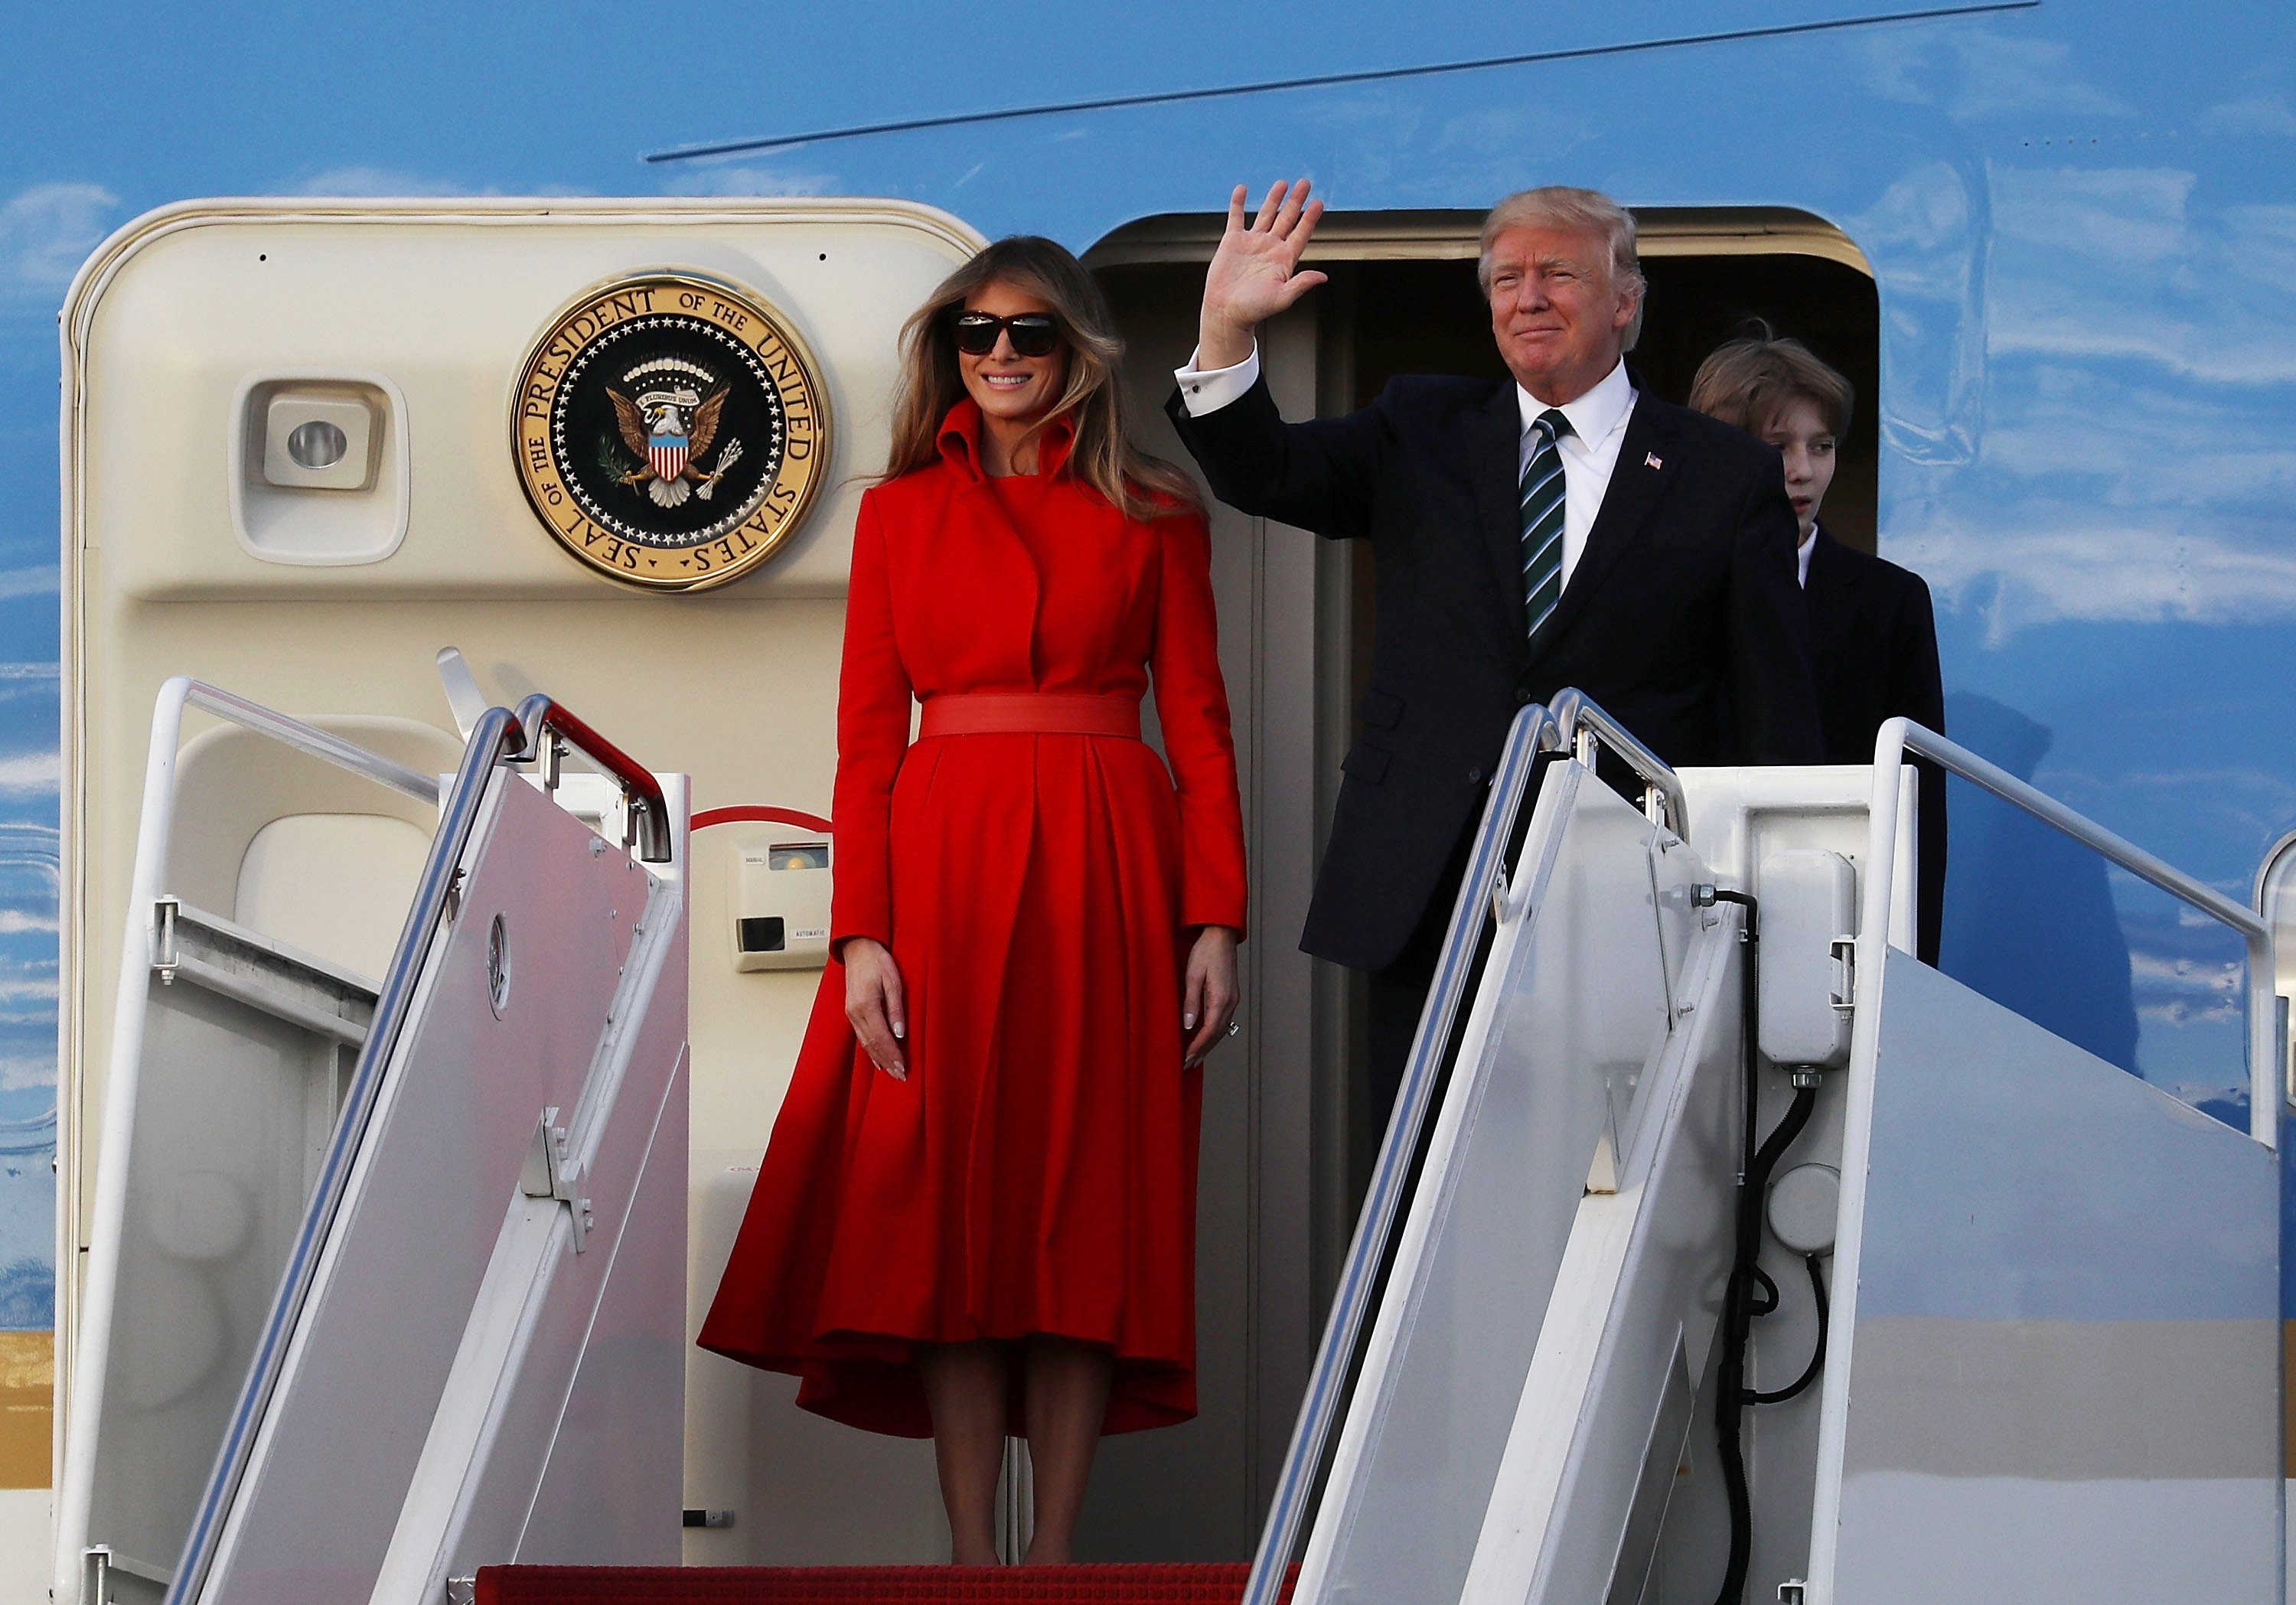 President Donald Trump, his wife Melania Trump and their son Barron Trump arrive together on Air Force One at the Palm Beach International Airport to spend part of the weekend at Mar-a-Lago resort on March 17, 2017 in West Palm Beach, Florida